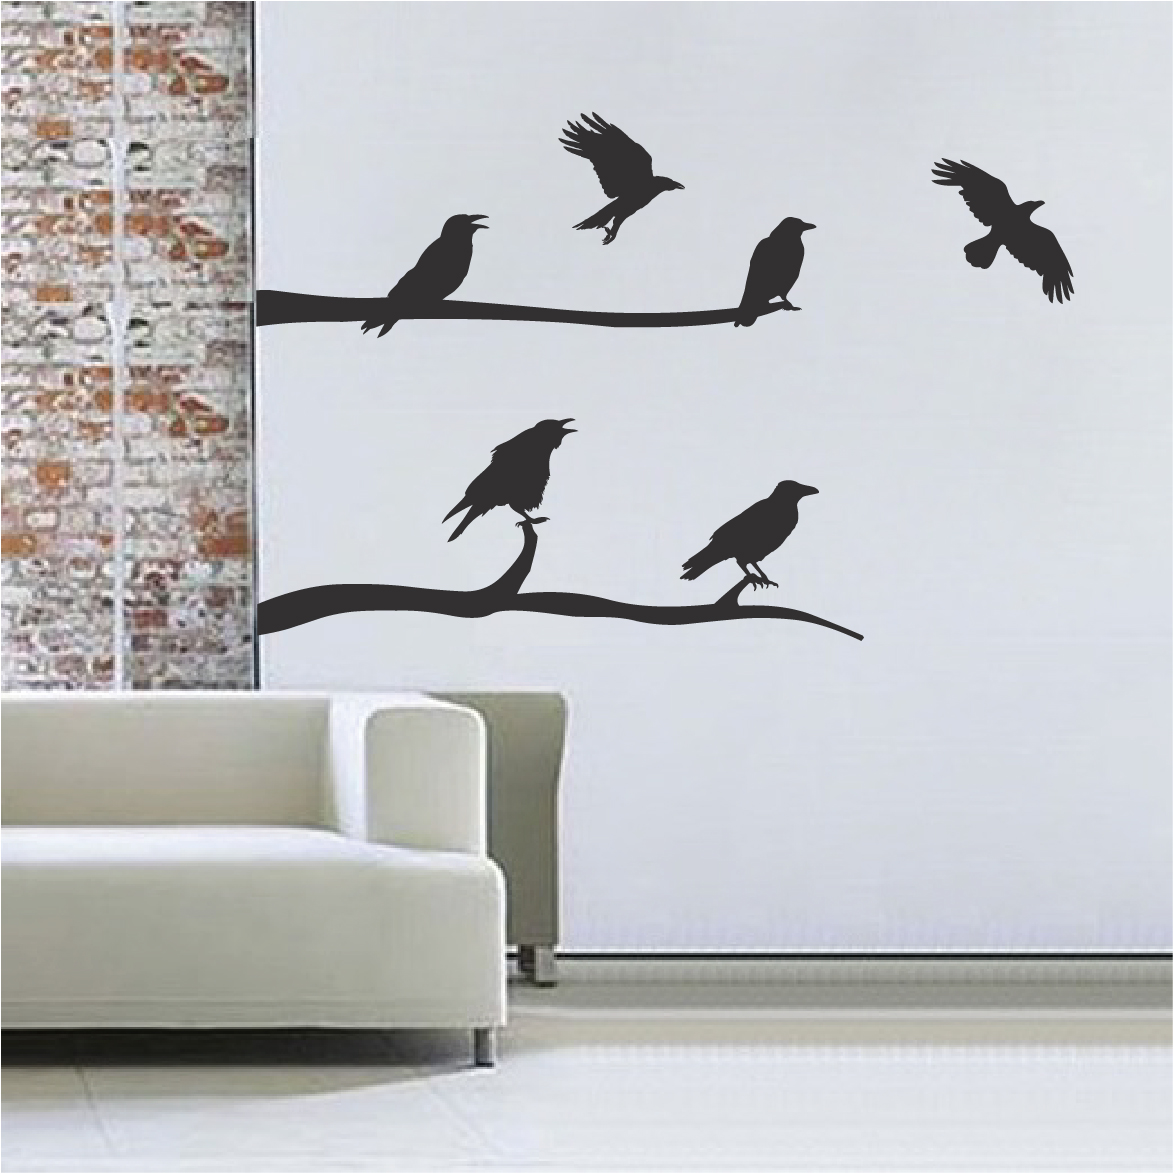 Crow Decal Stickers Halloween Decals Decoration Crows Wall and